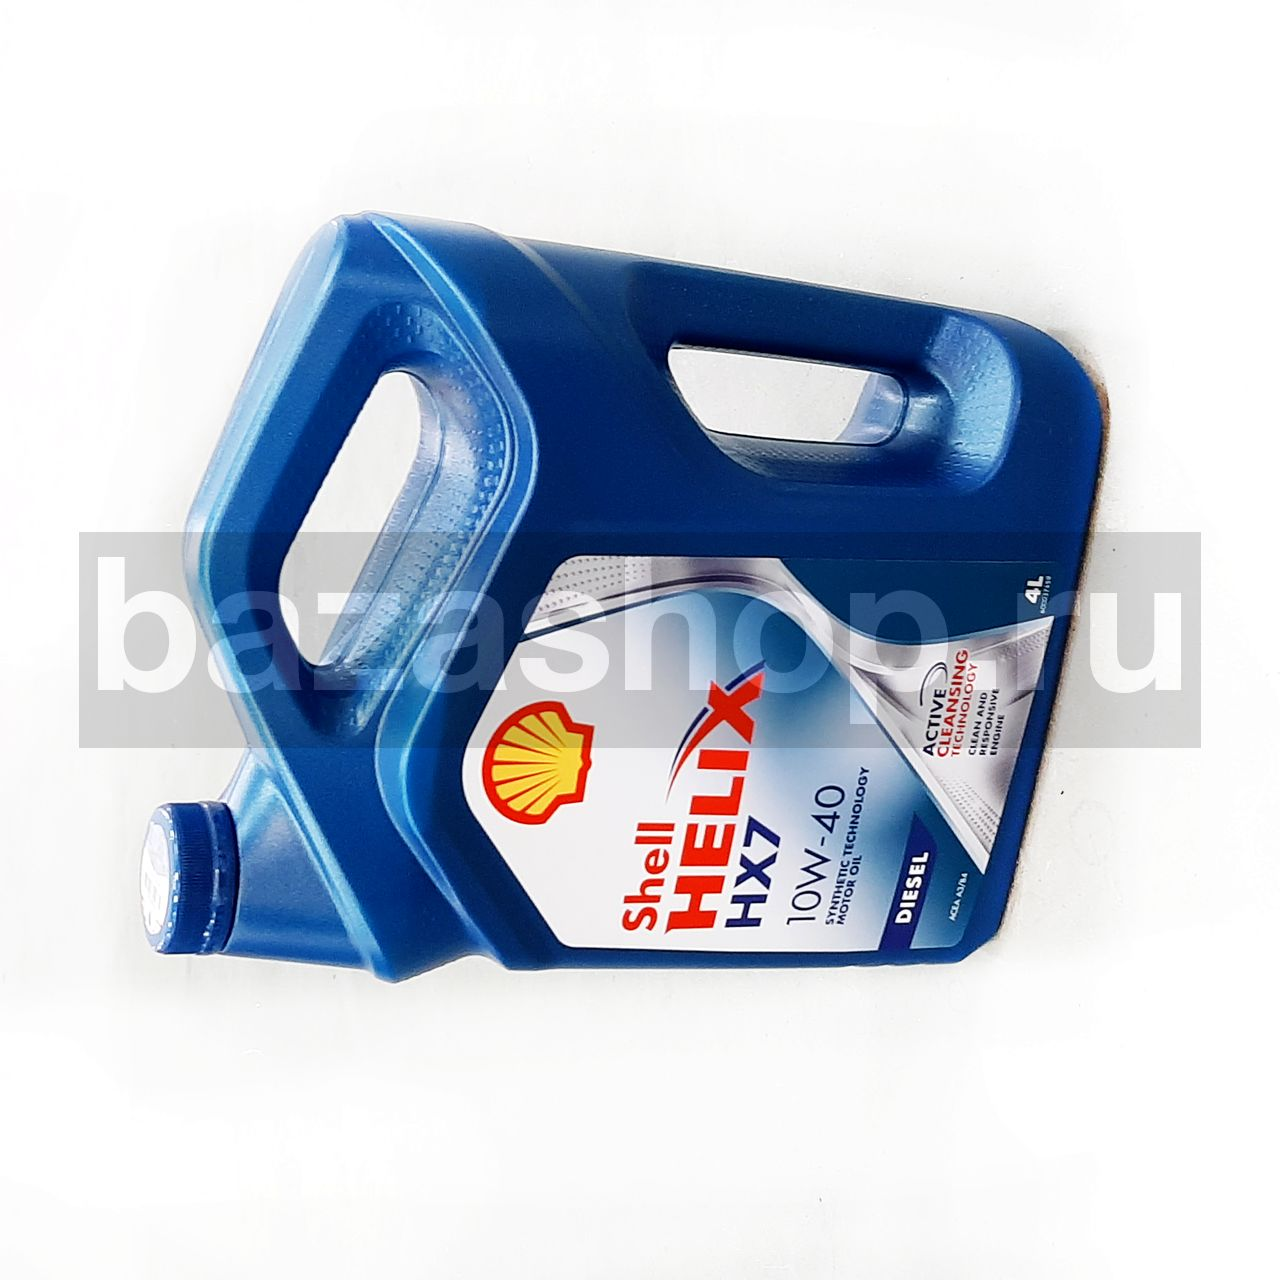 Масло  SHELL/Helix Diesel HX7 10W/40 (4л) / МАСЛО SHELL/Helix Diesel HX7 10W/40 (4л)